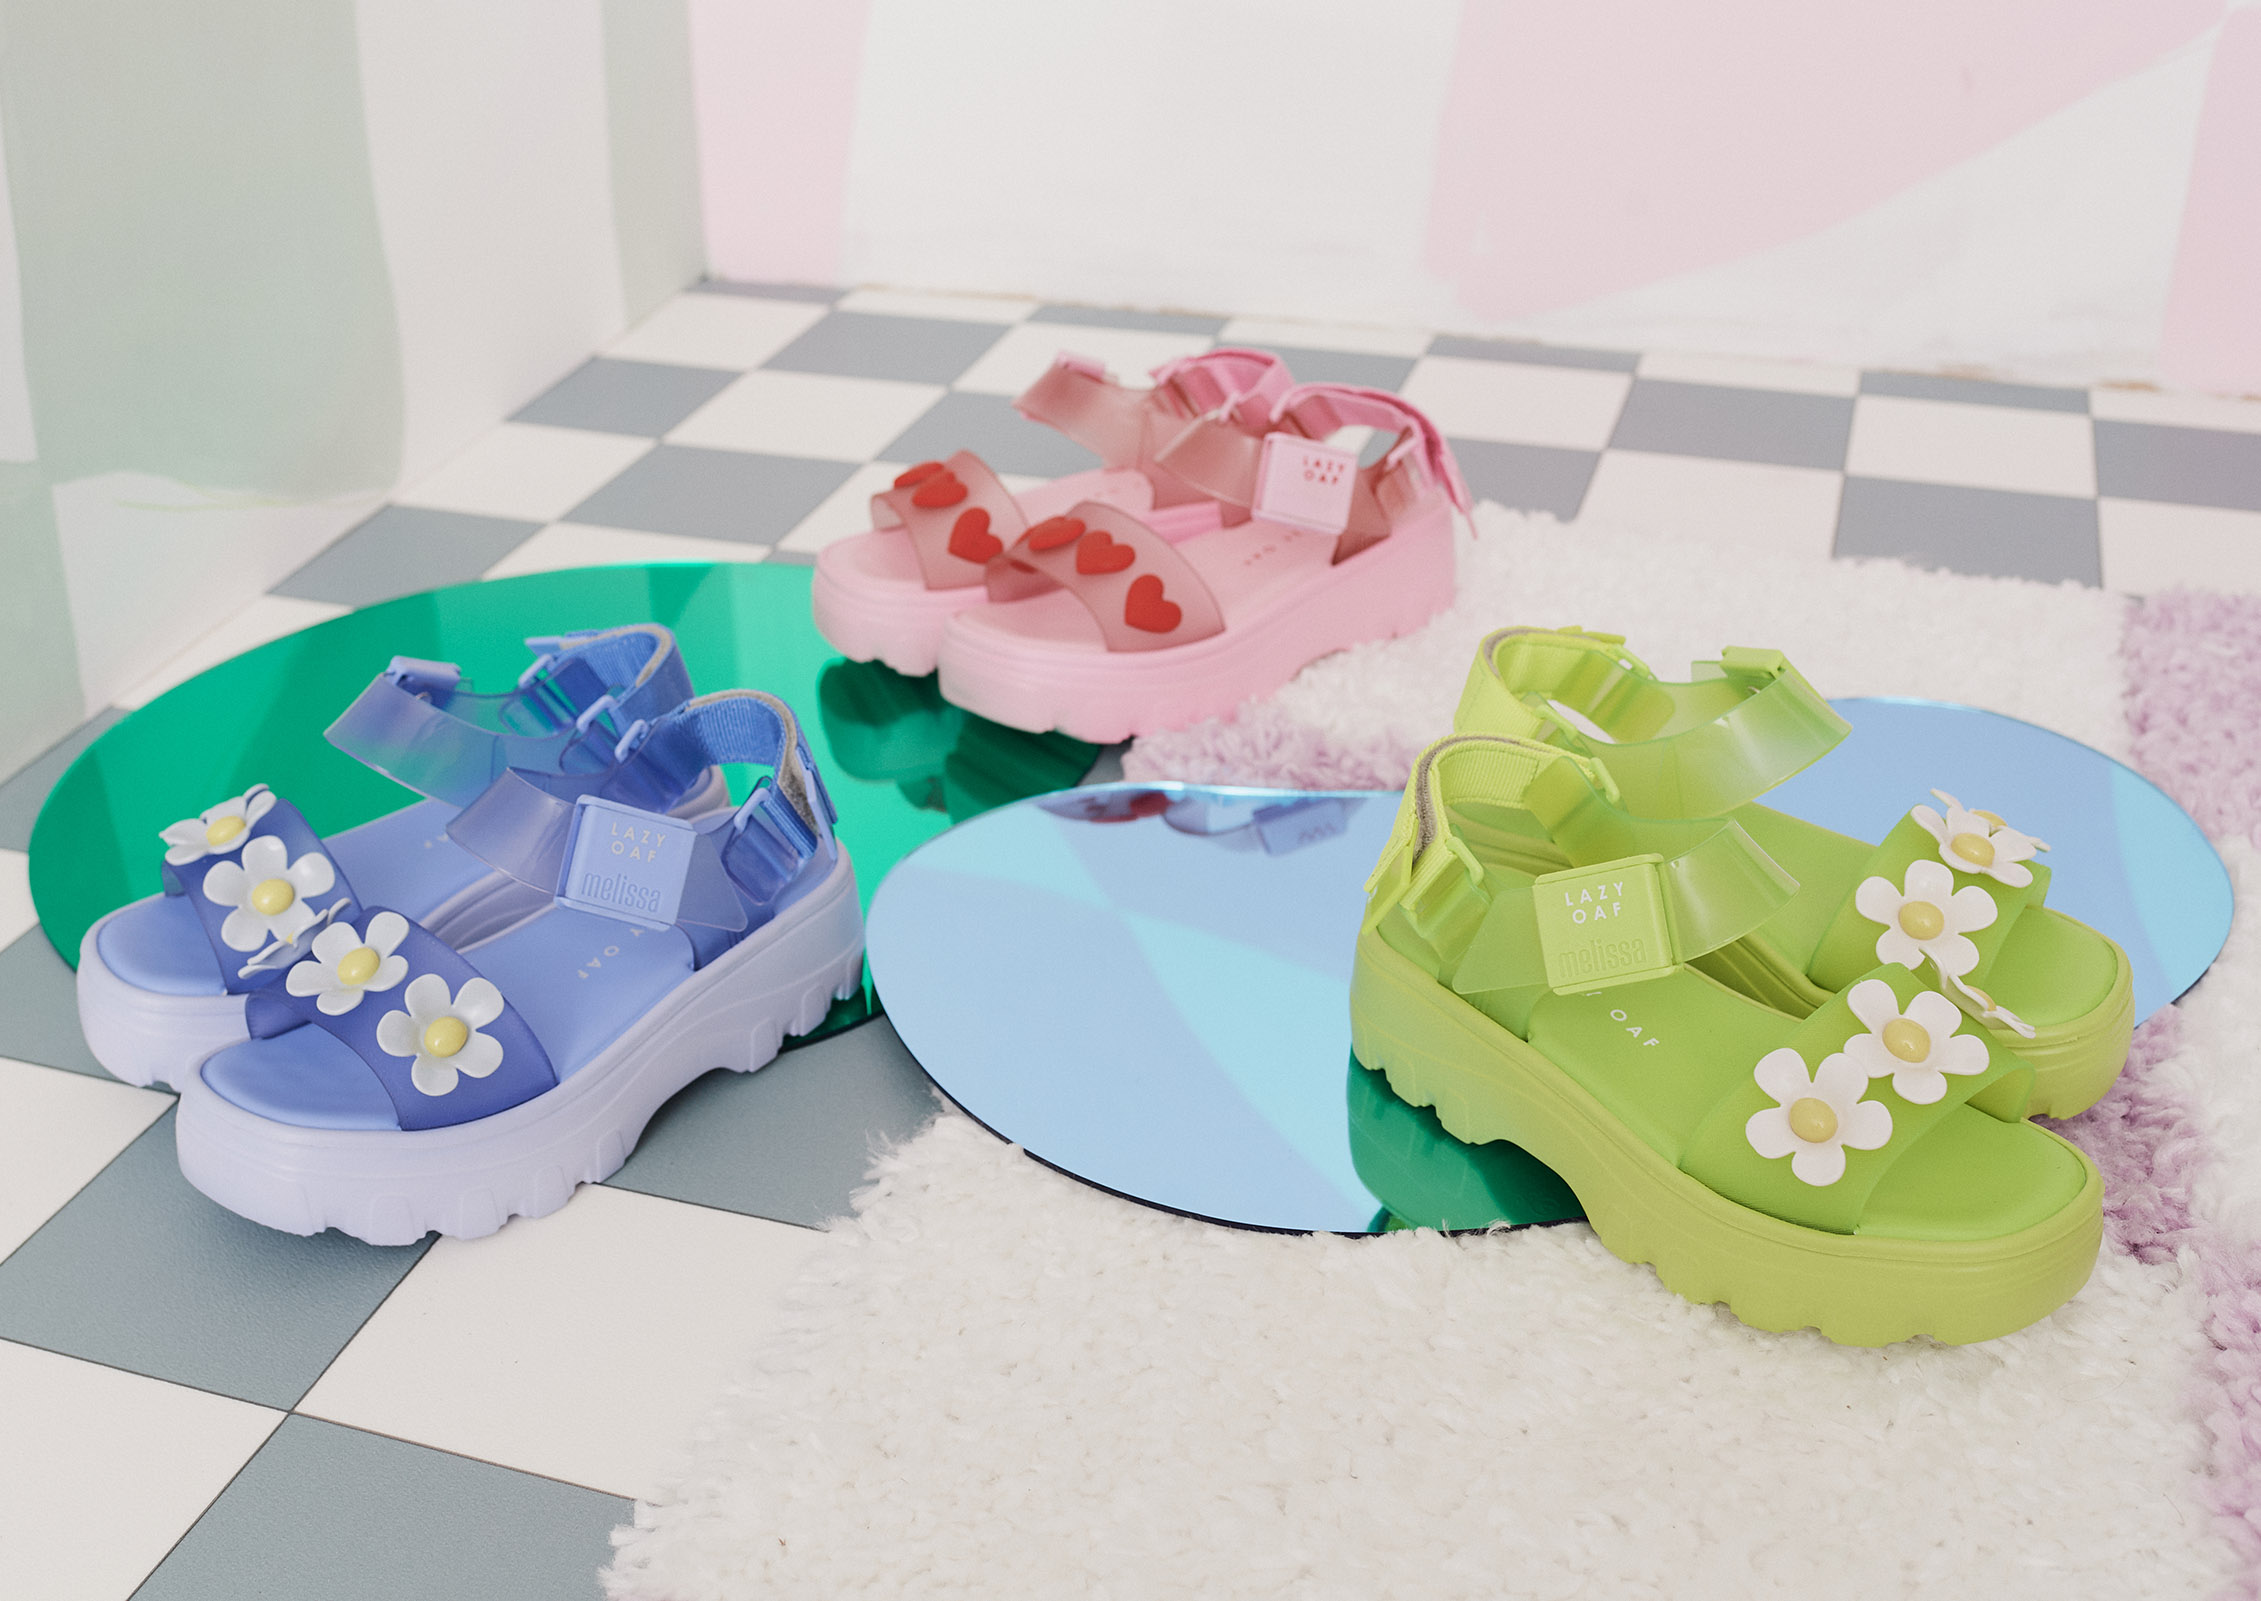 Vegan Footwear Brand Melissa Collaborates with Lazy Oaf - Notion